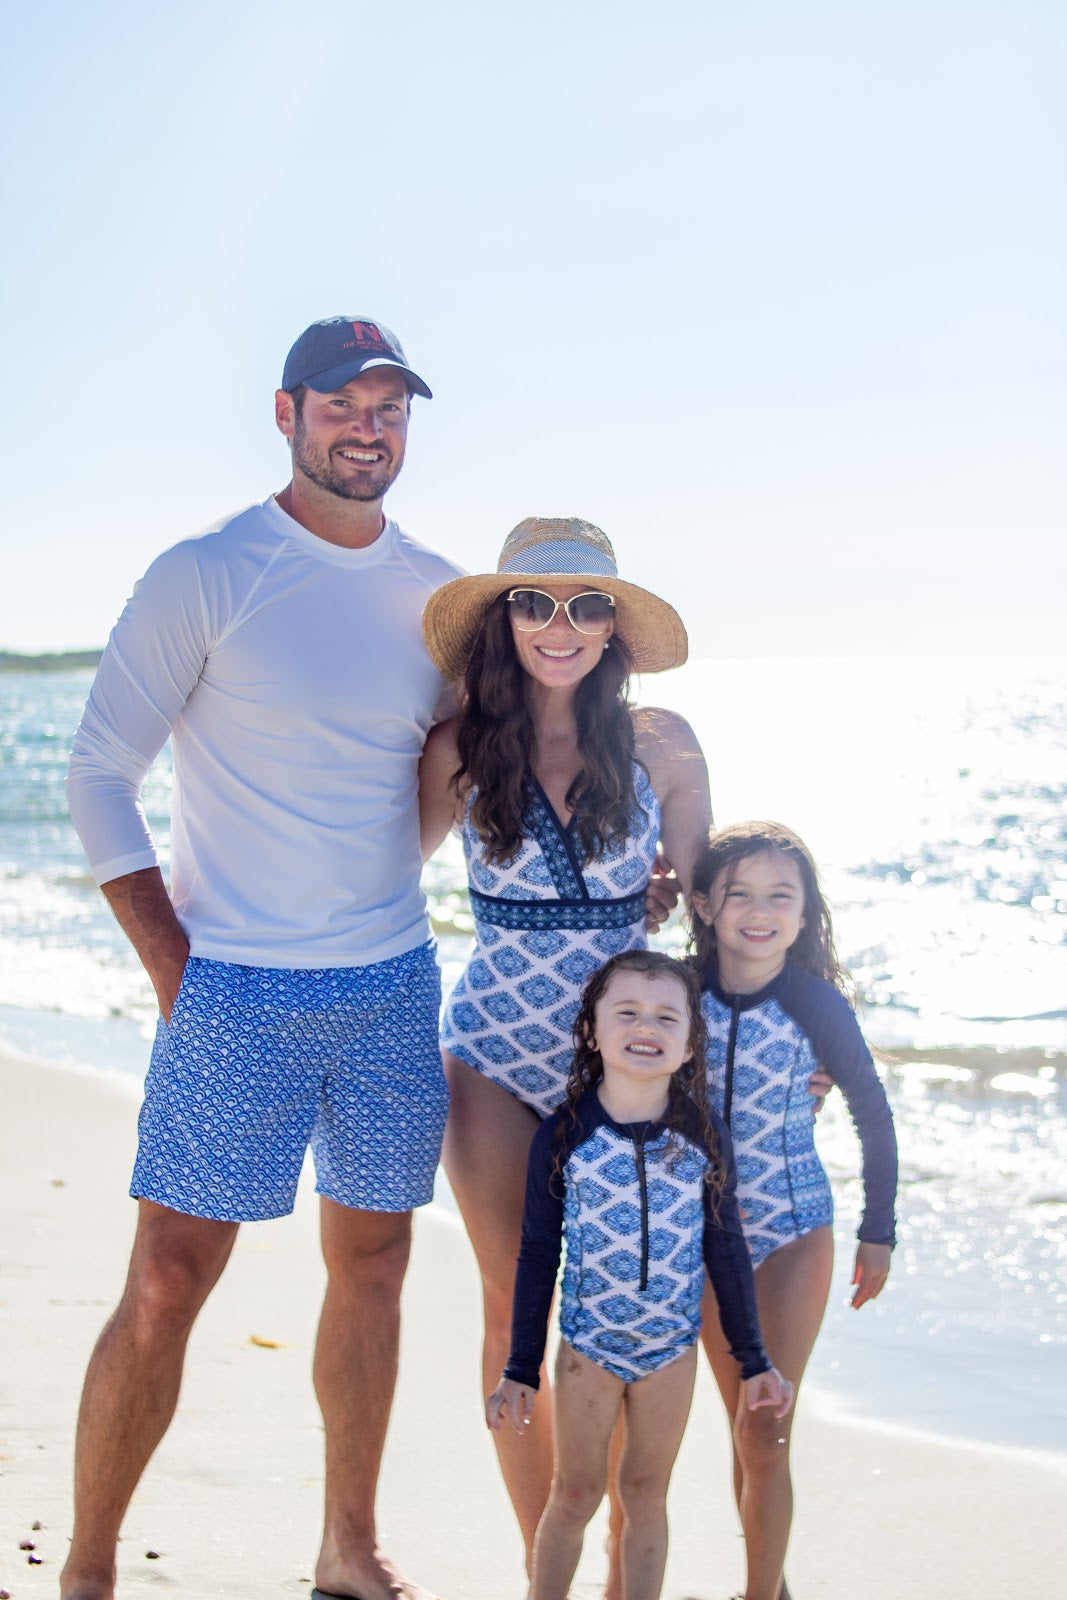 Caitlin Houston & family wearing family matching Batik swimsuits with UPF 50+ protection